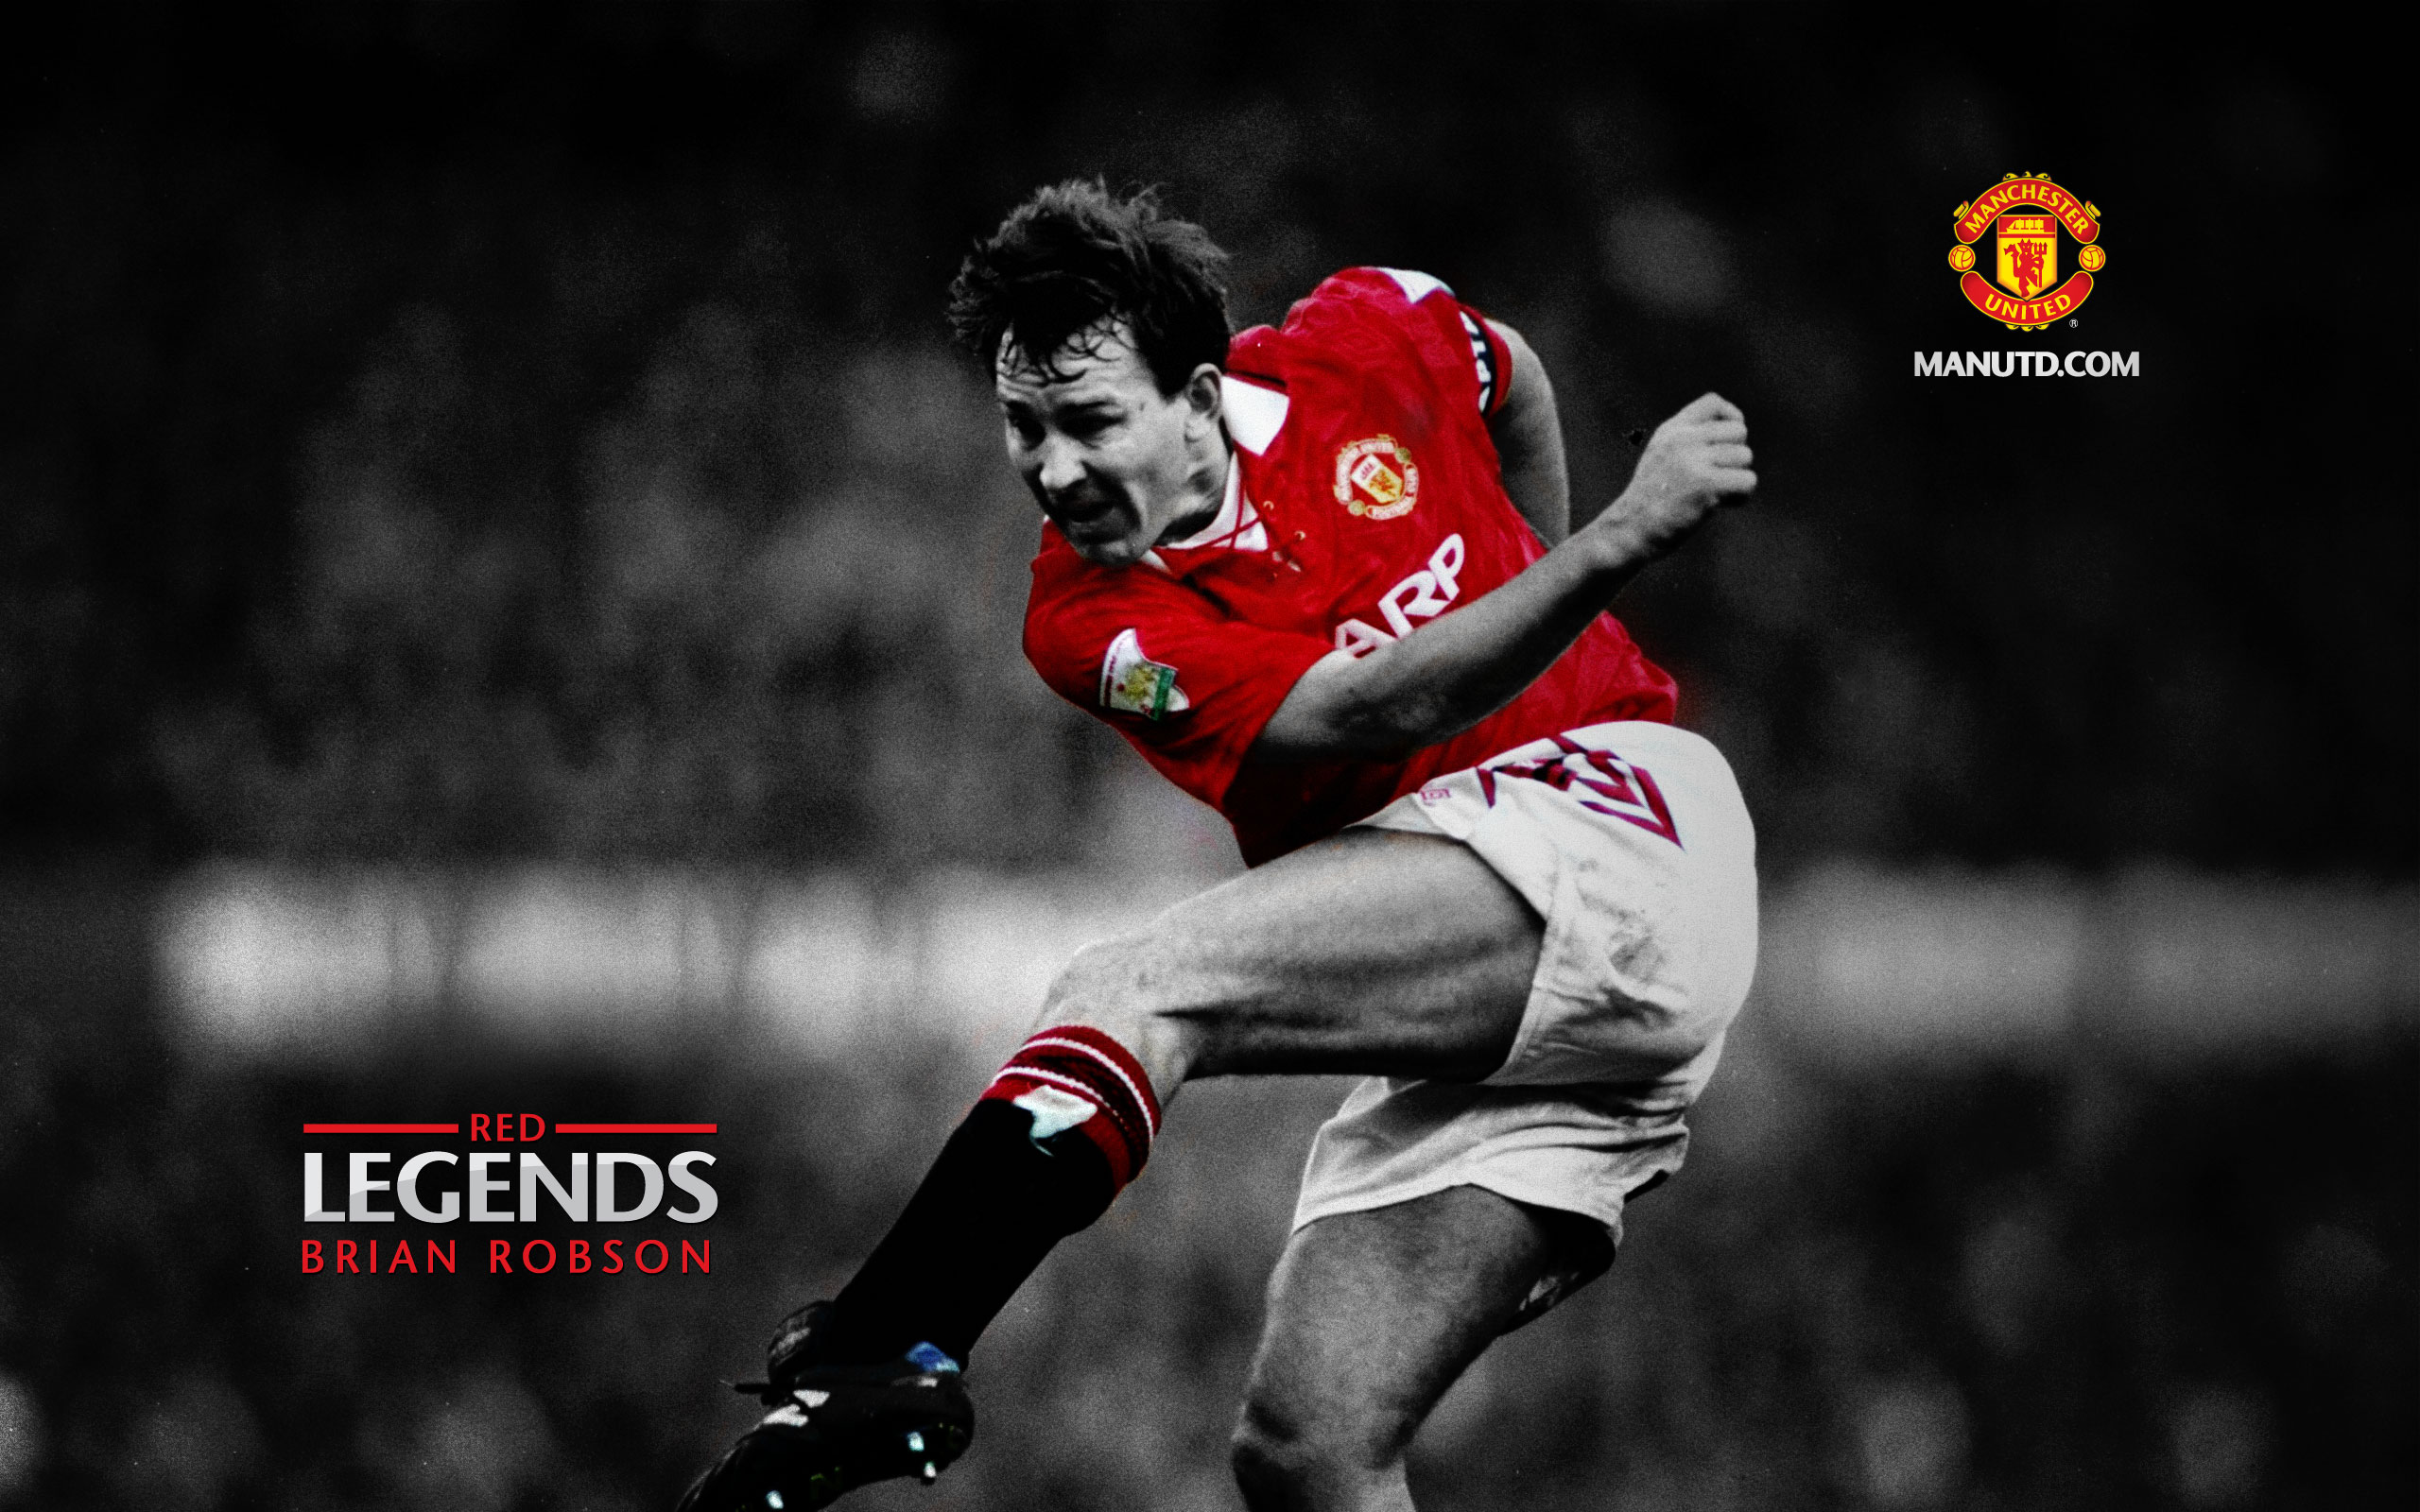 Legends - Bryan Robson